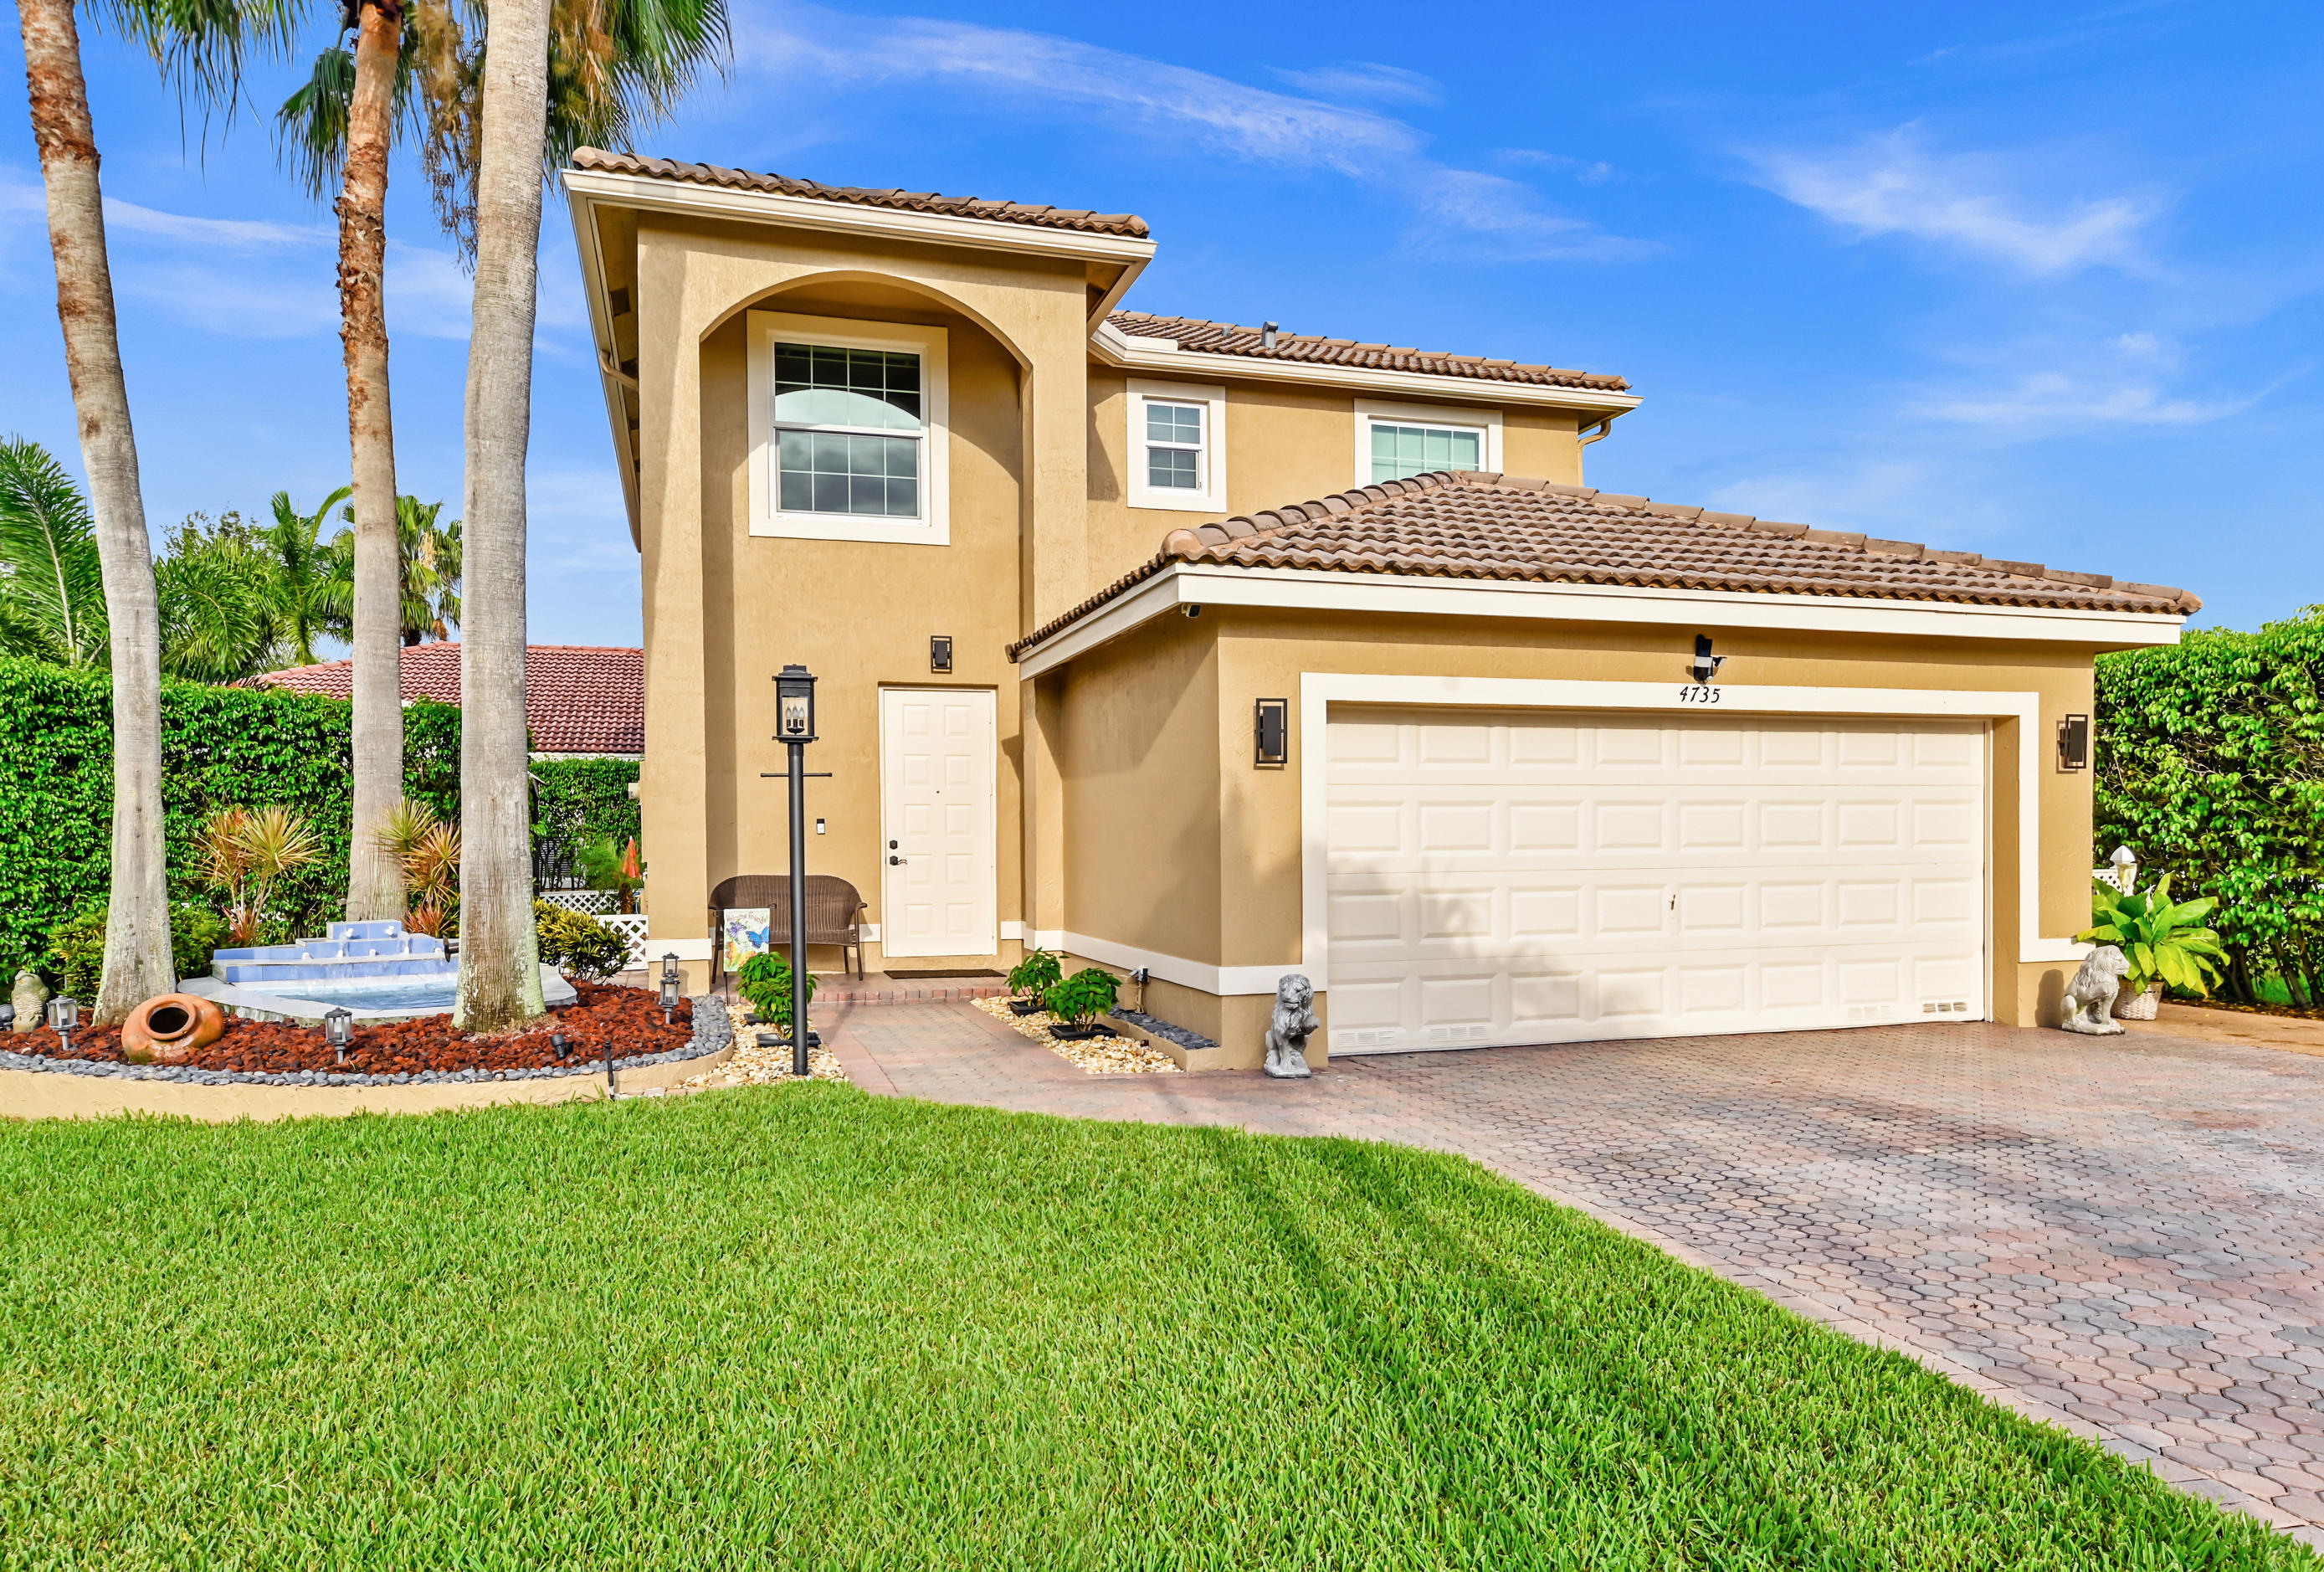 Home for sale in Pelican Trails West Coral Springs Florida